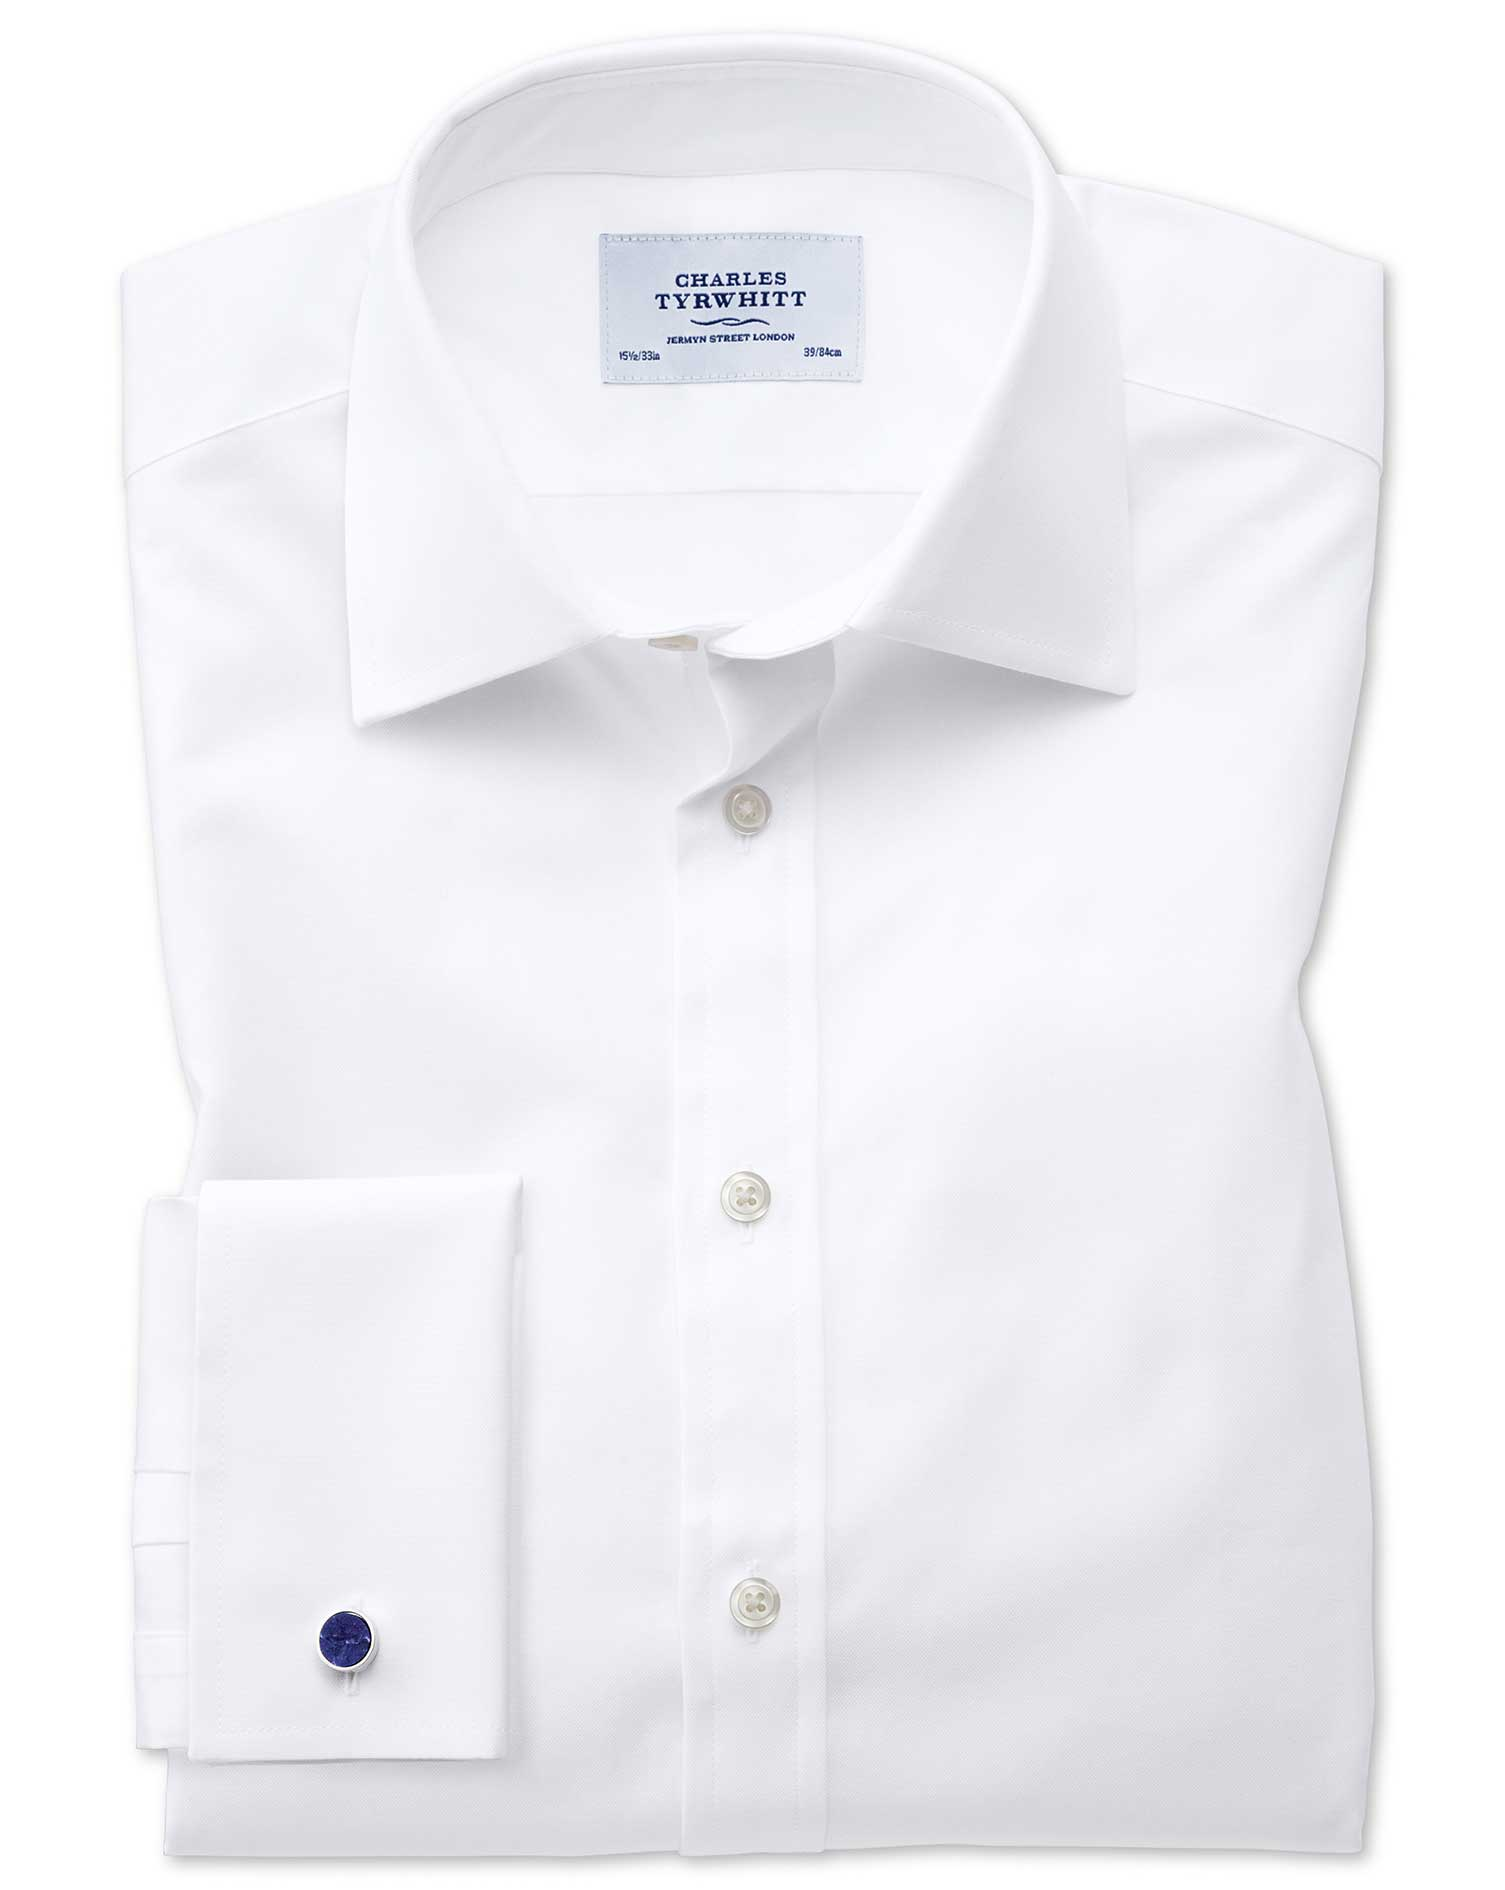 Slim Fit Oxford White Cotton Formal Shirt Double Cuff Size 16/38 by Charles Tyrwhitt